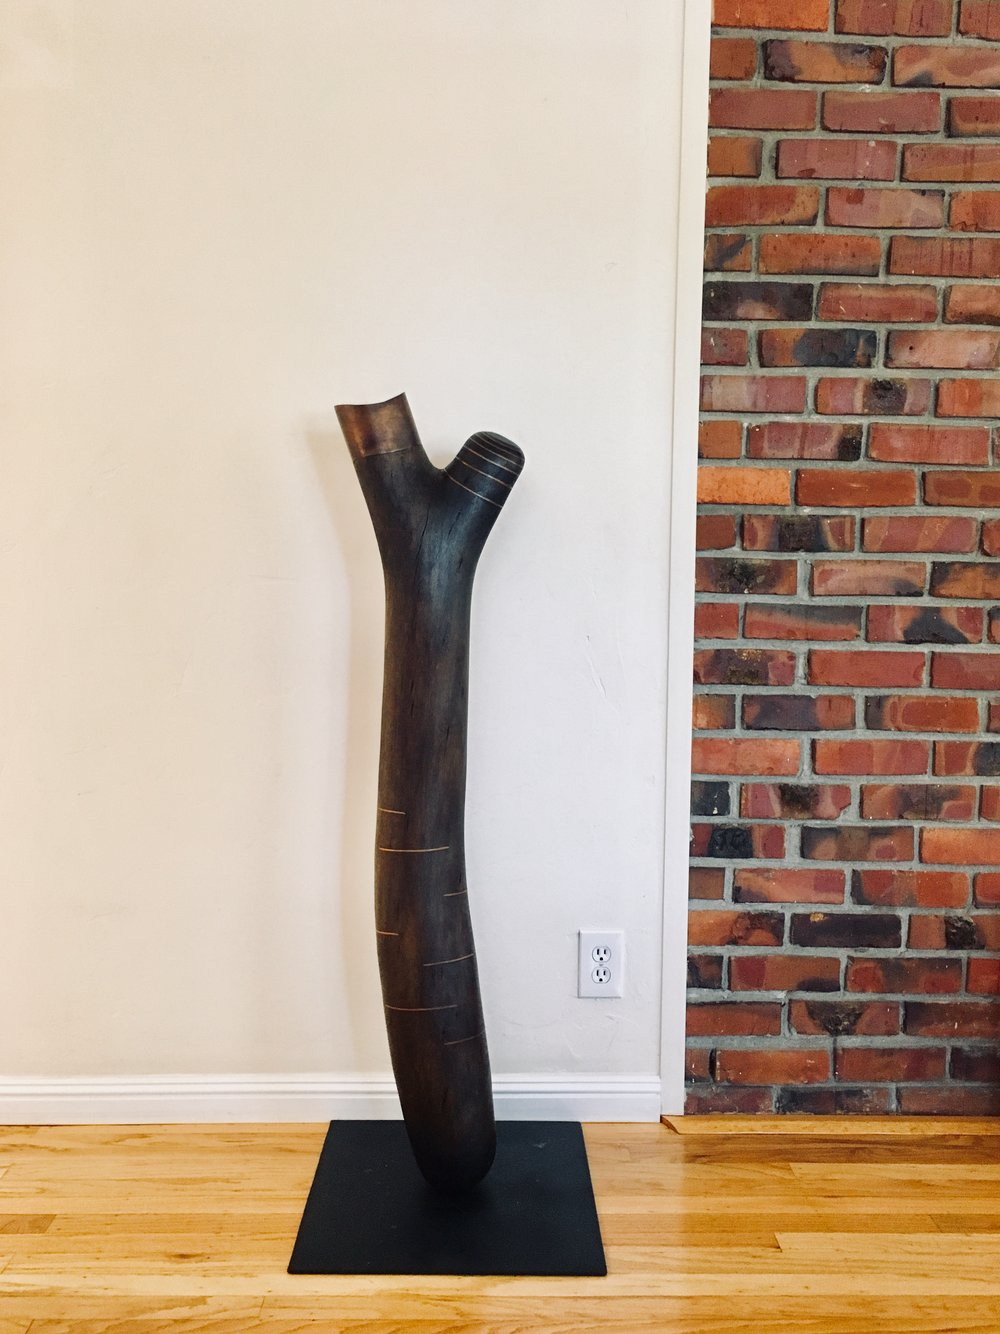 Ann used a fallen tree branch as the foundation of this piece